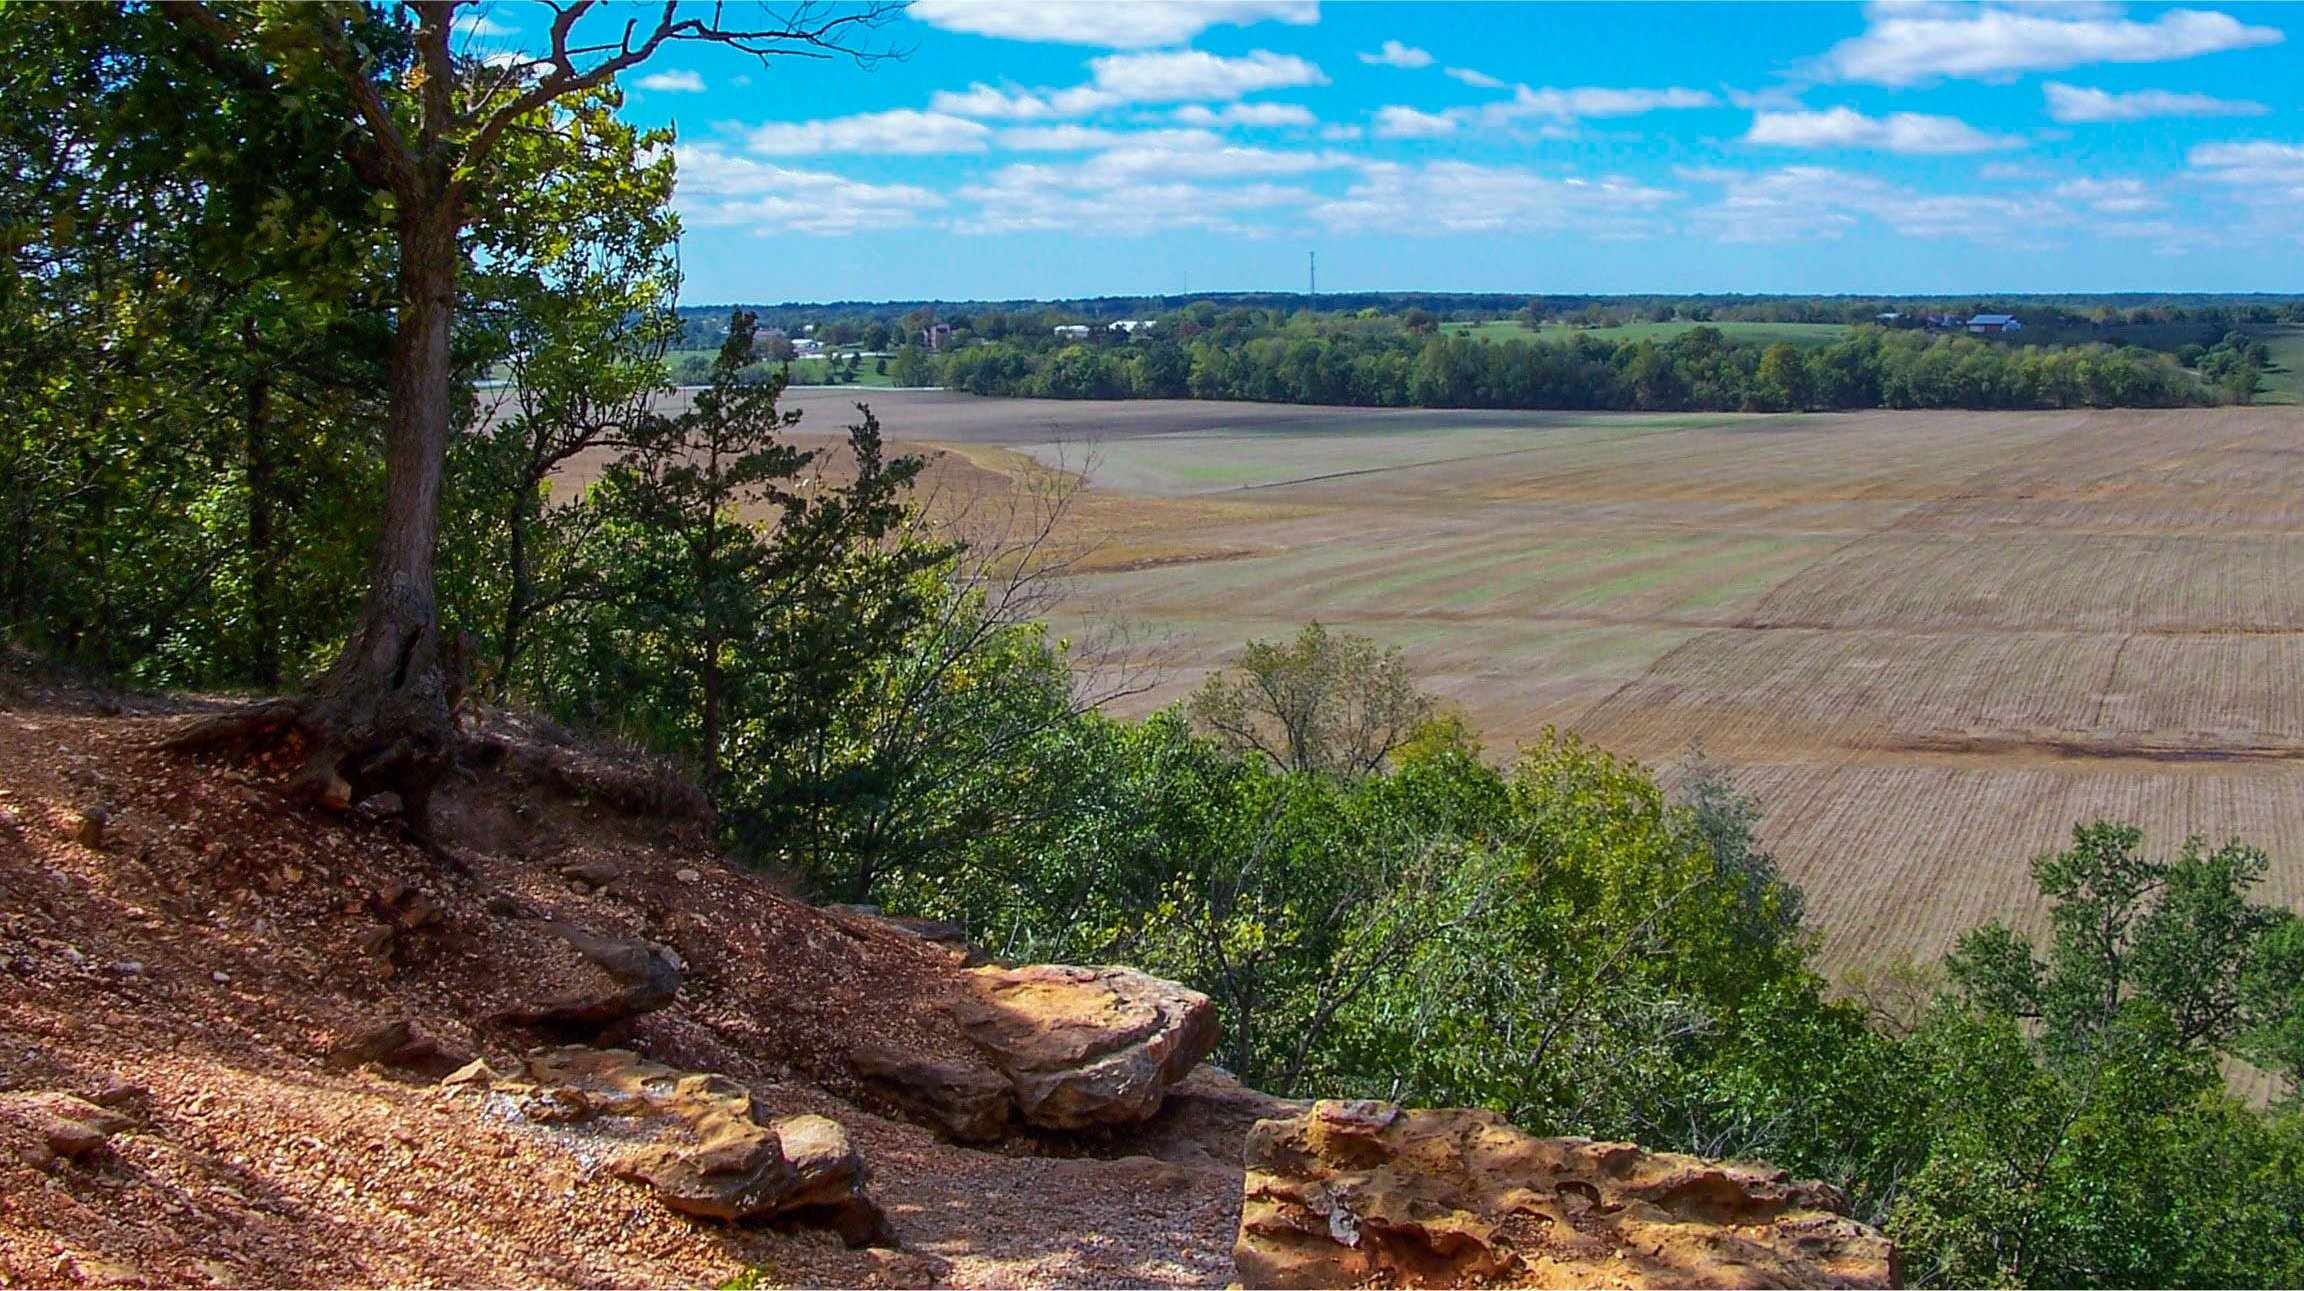 A view of Missouri's farmland from the Frenchman's Bluff Trail